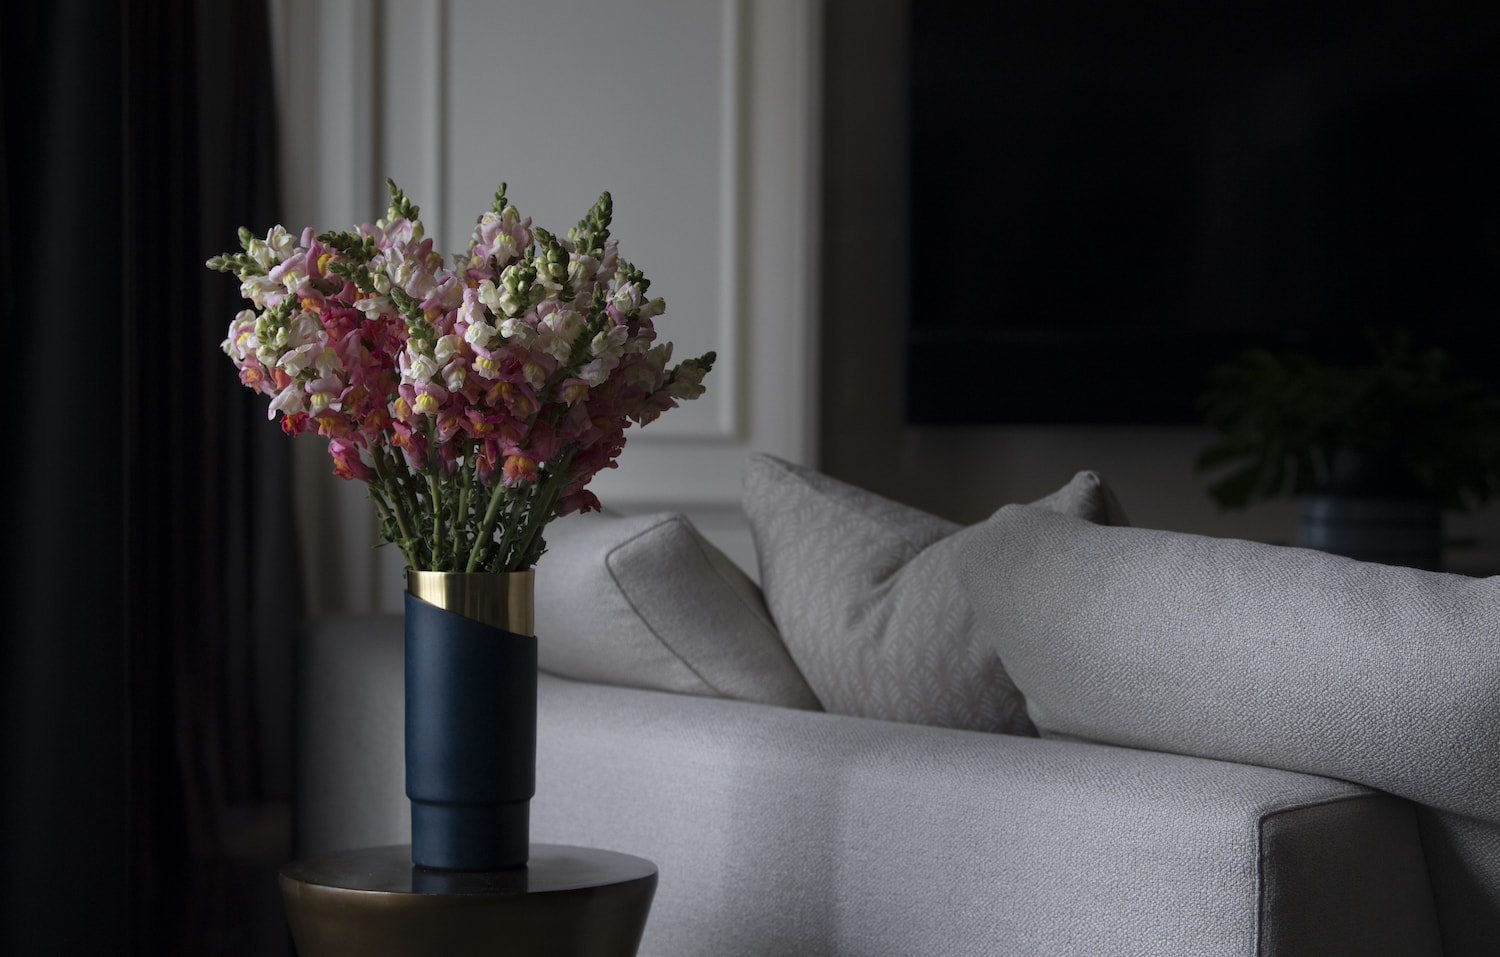 Shine A Light - Send cut to order, luxury peony flowers direct from the growers and delivered by UK's first online florist to be entirely sustainable and 100% plastic-free.